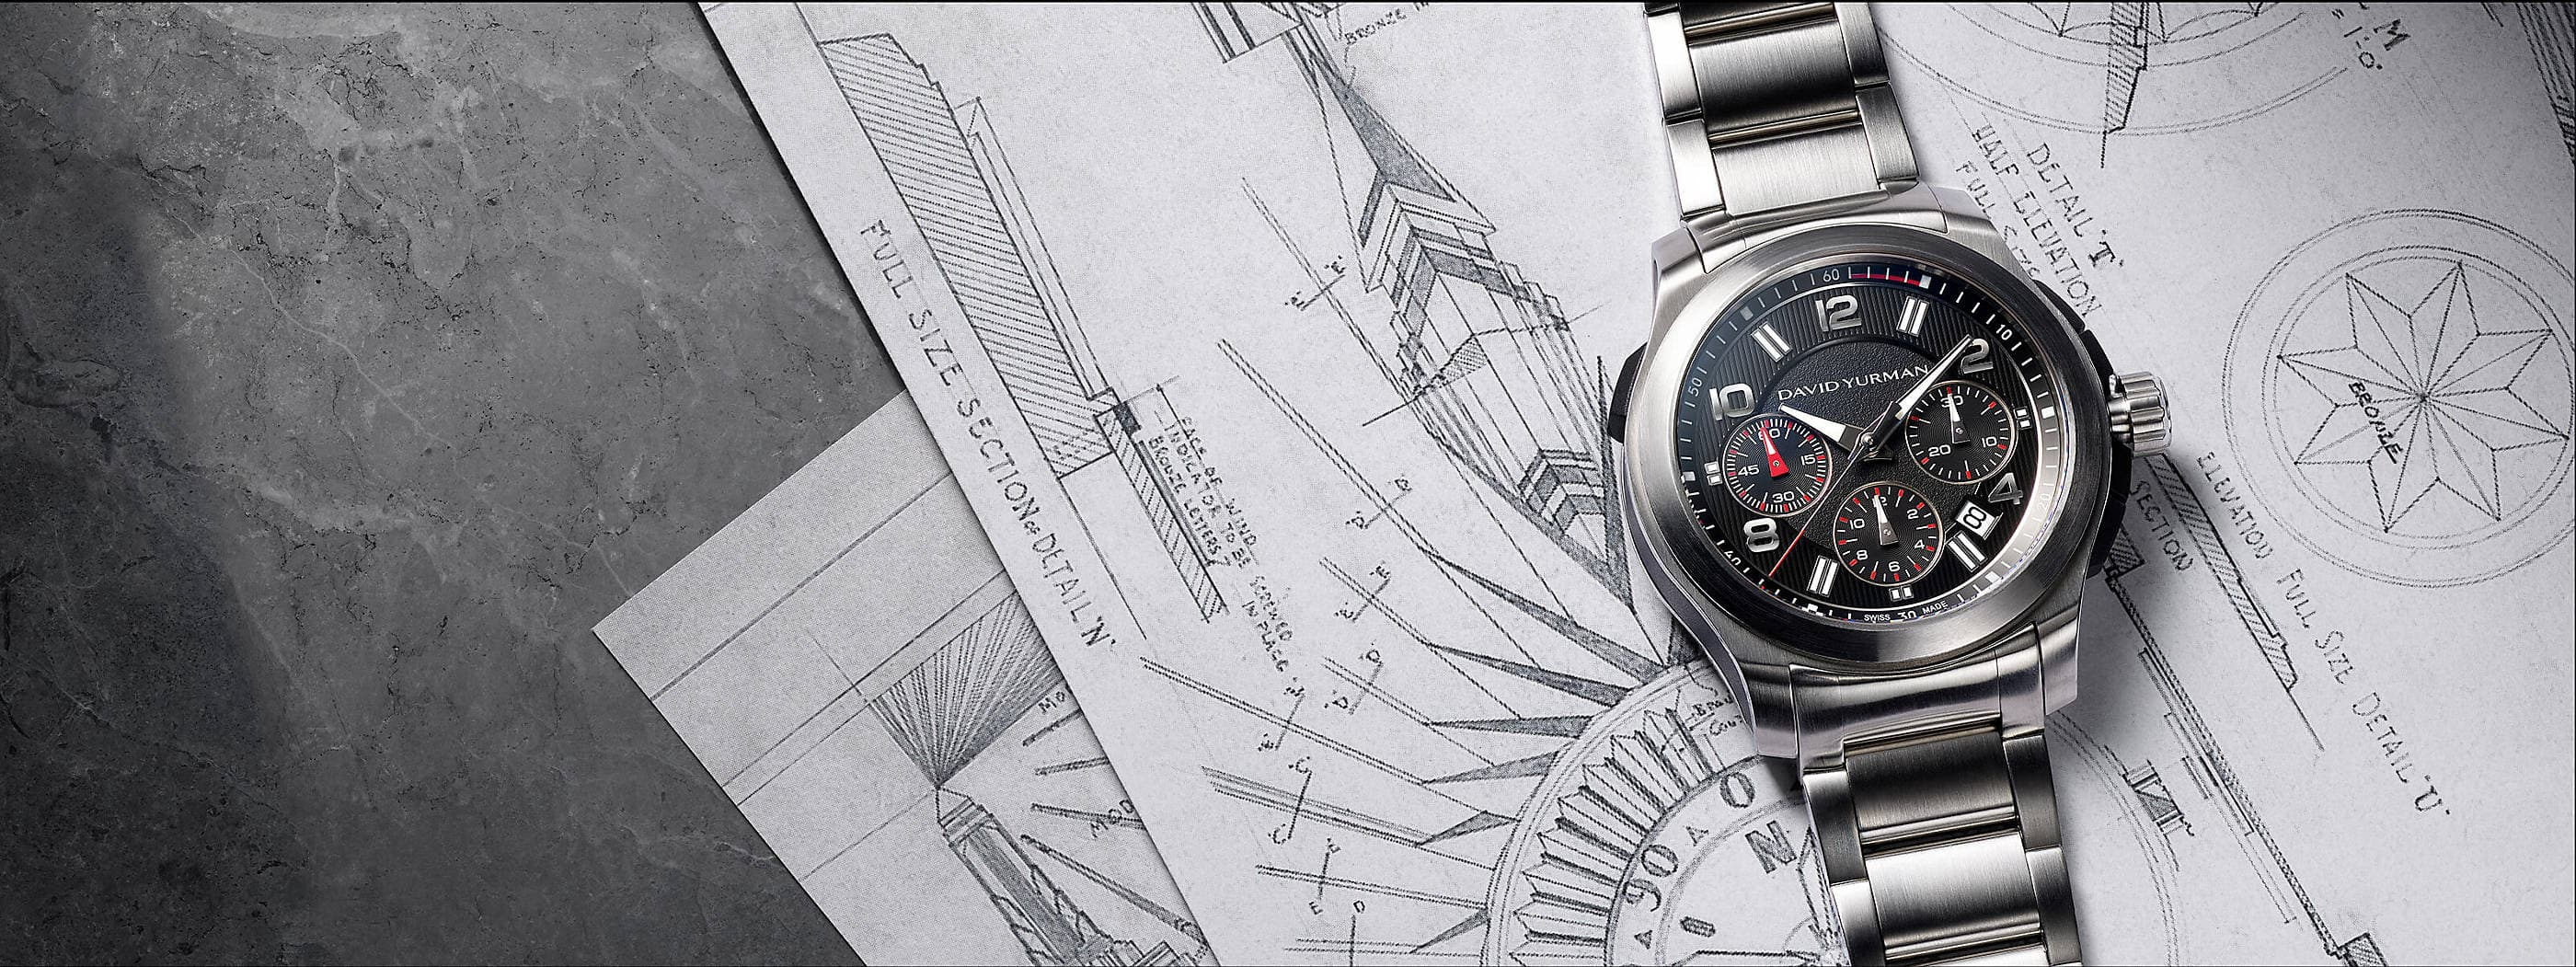 A color photograph shows a David Yurman men's Revolution chronograph placed atop architectural blueprints on a grey marble surface. The watch is crafted with a stainless-steel case and a black-and-silver dial.